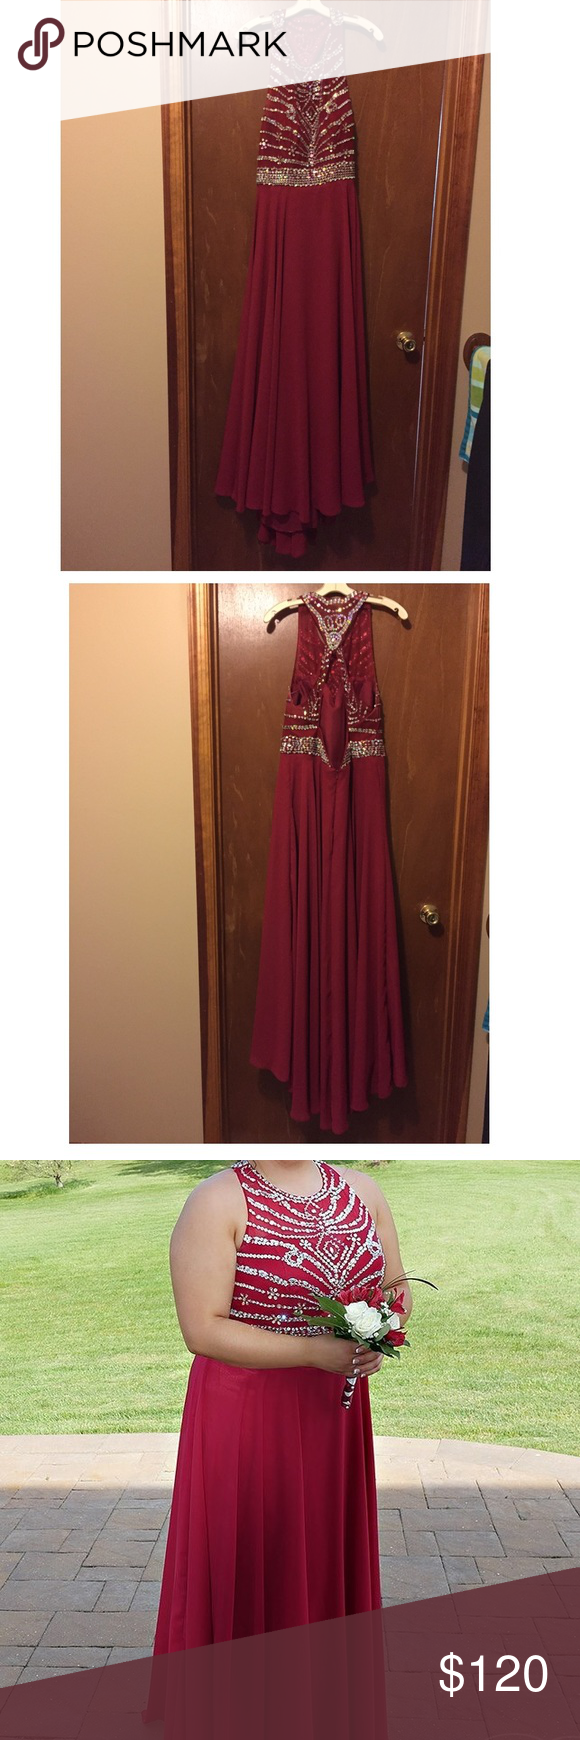 Red prom dress worn only once size and length was altered by